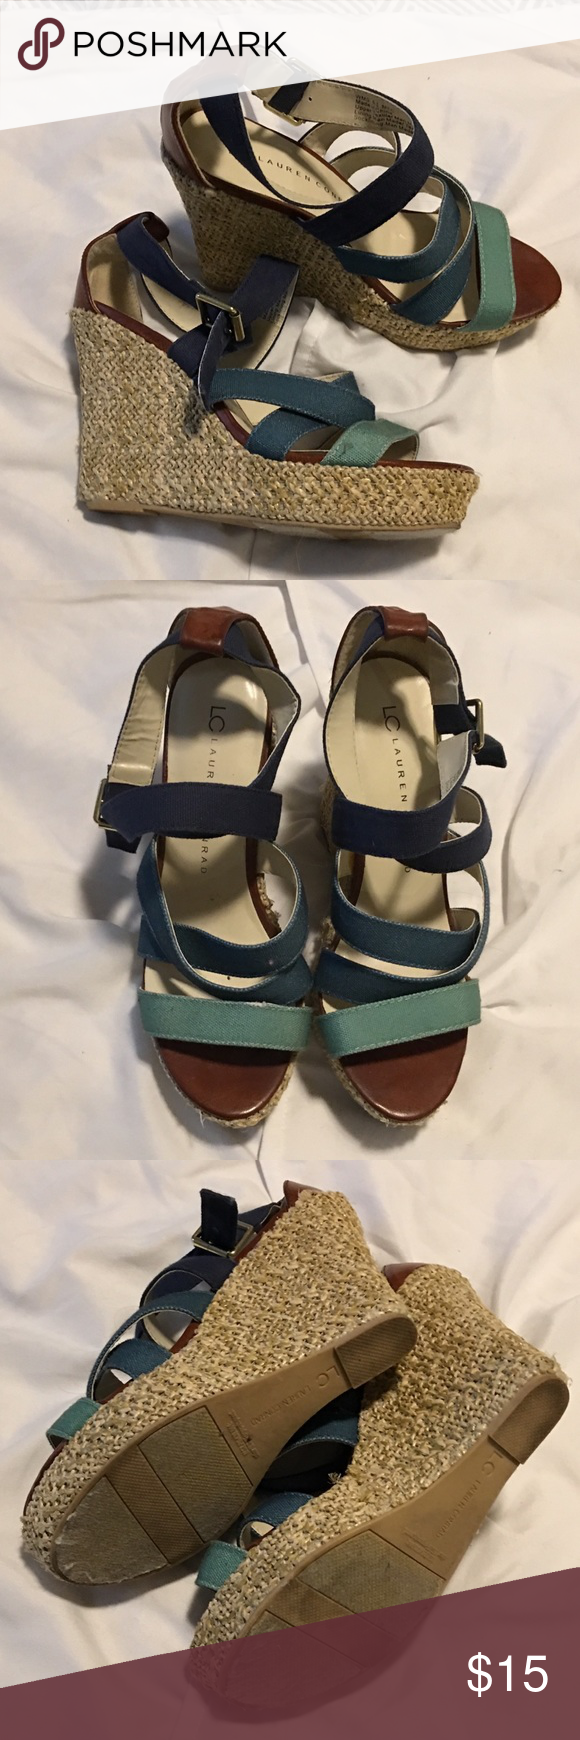 fa78f75660cd LC by Lauren Conrad wedges Blue and teal strappy Lauren Conrad wedge sandals.  Size 6.5. Worn once. Only minor wear. LC Lauren Conrad Shoes Wedges